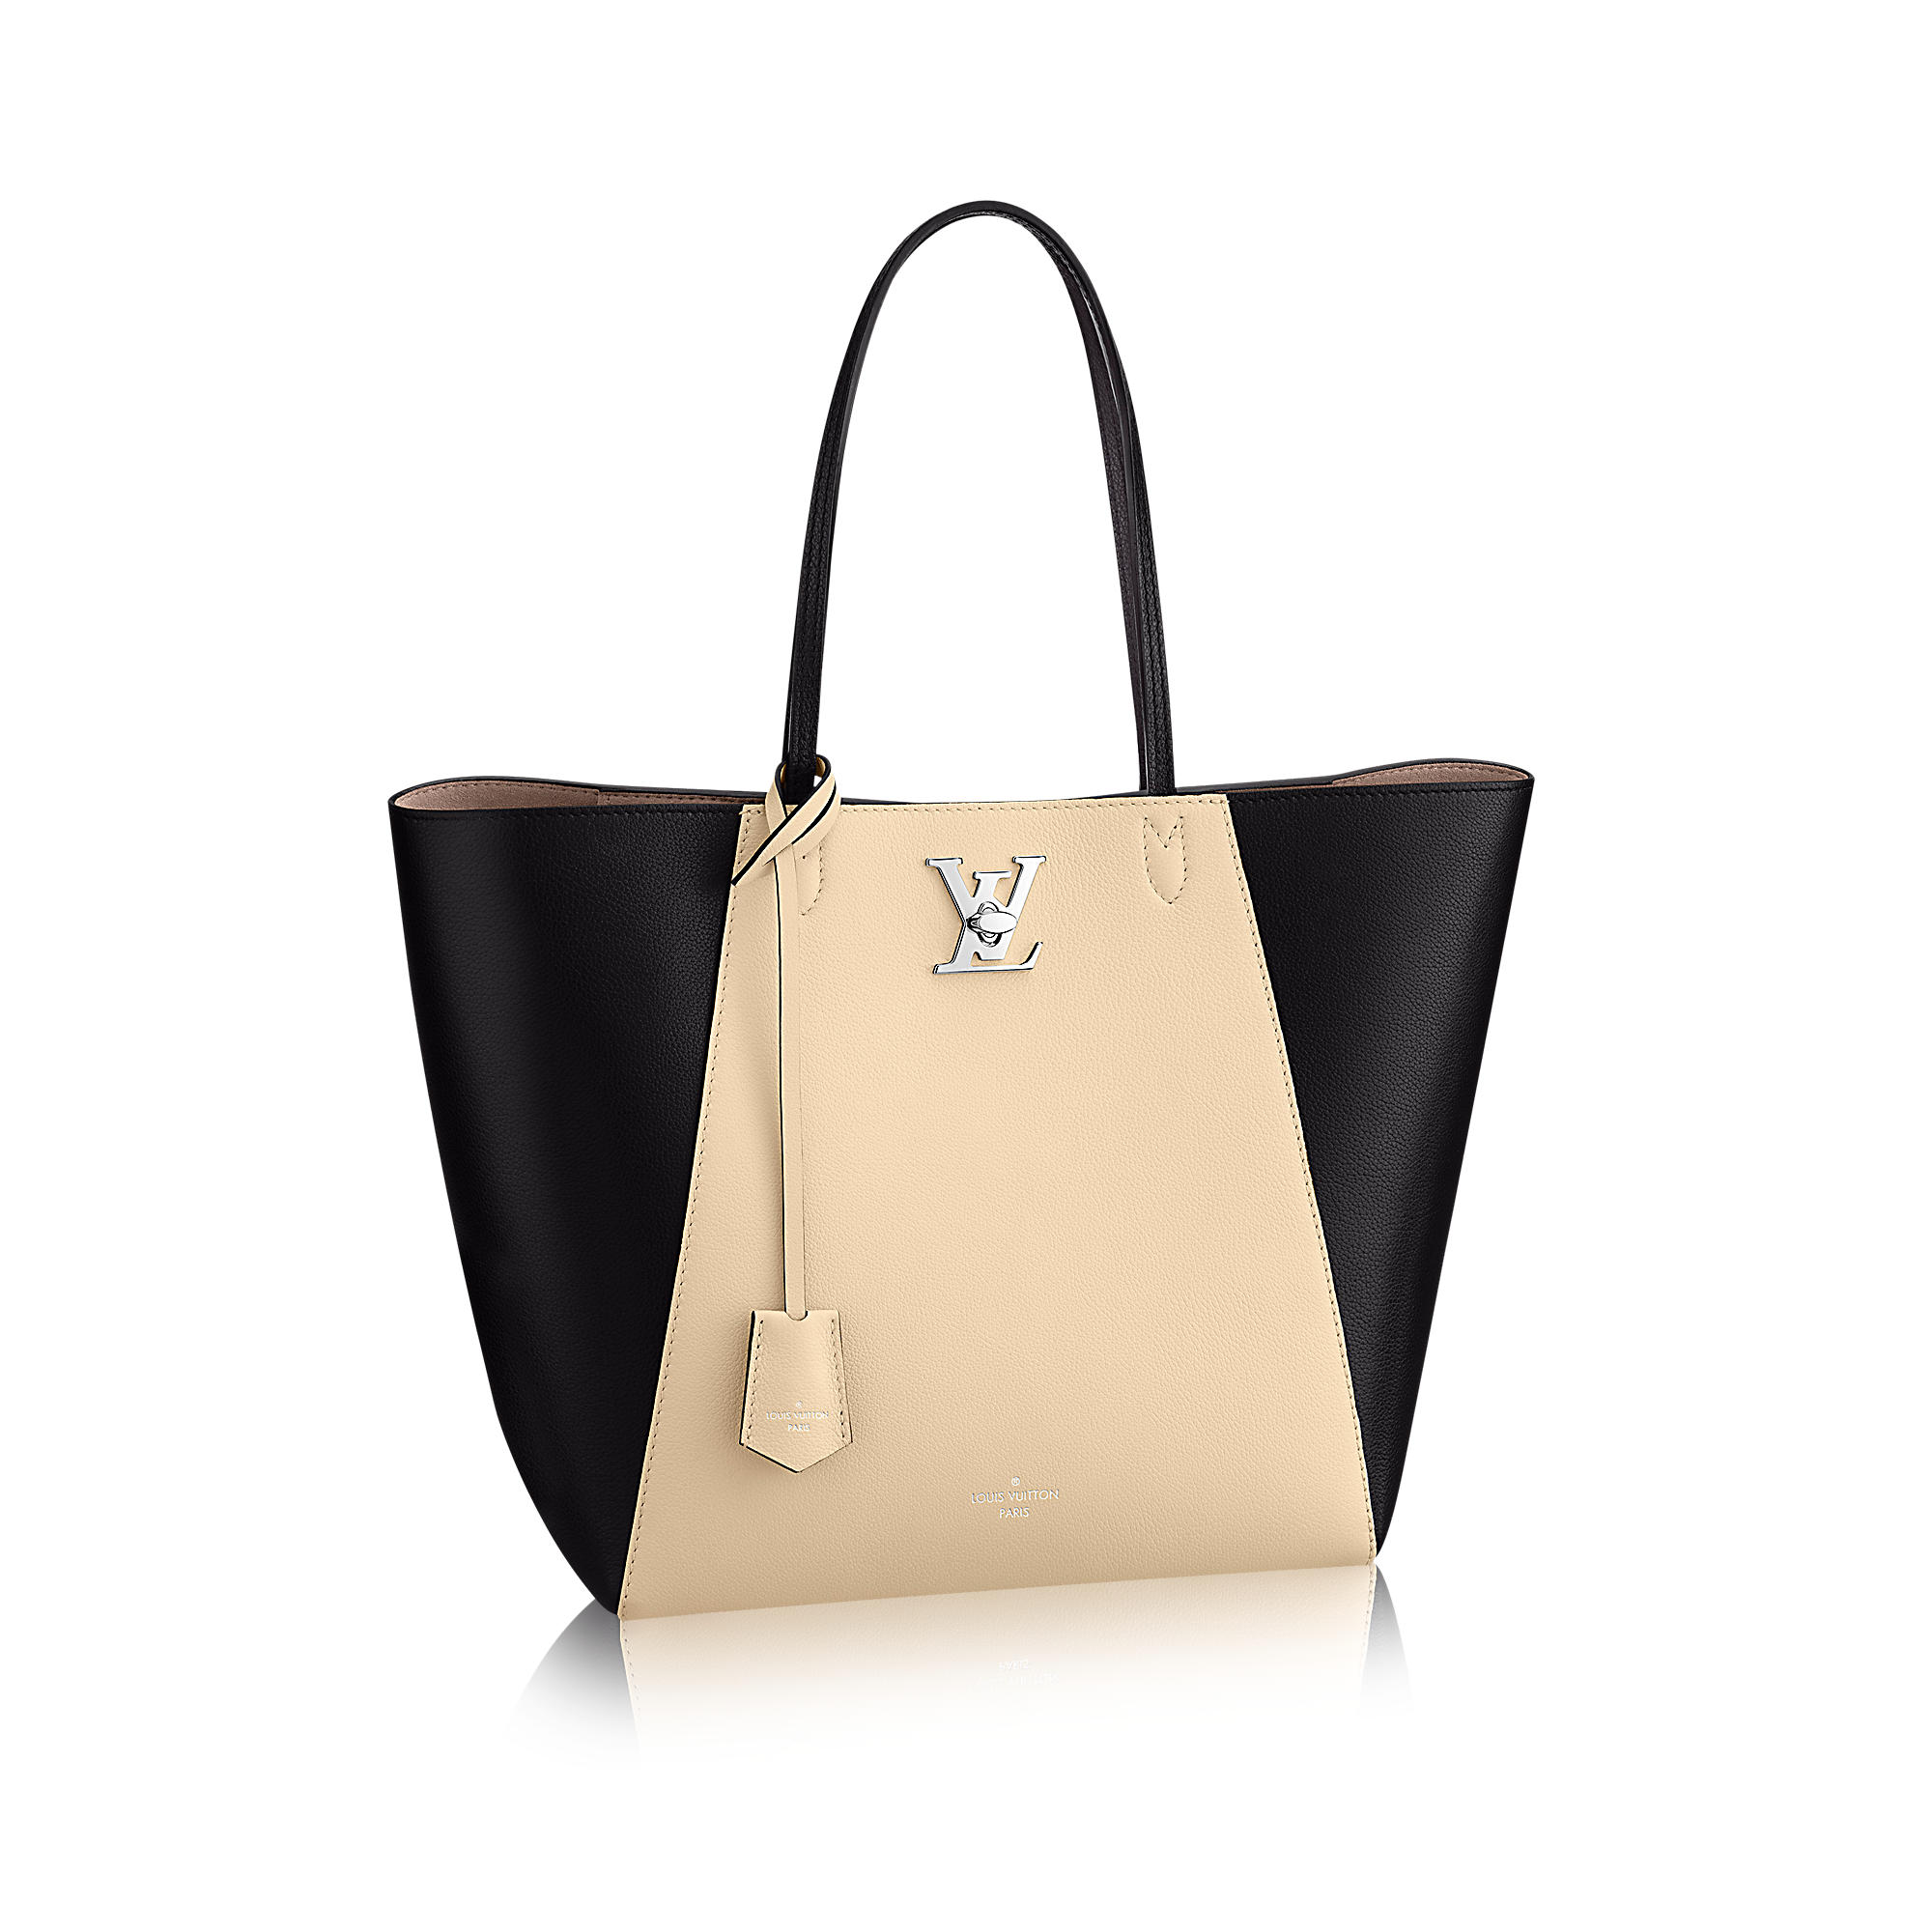 first look the fashionable louis vuitton lockme cabas